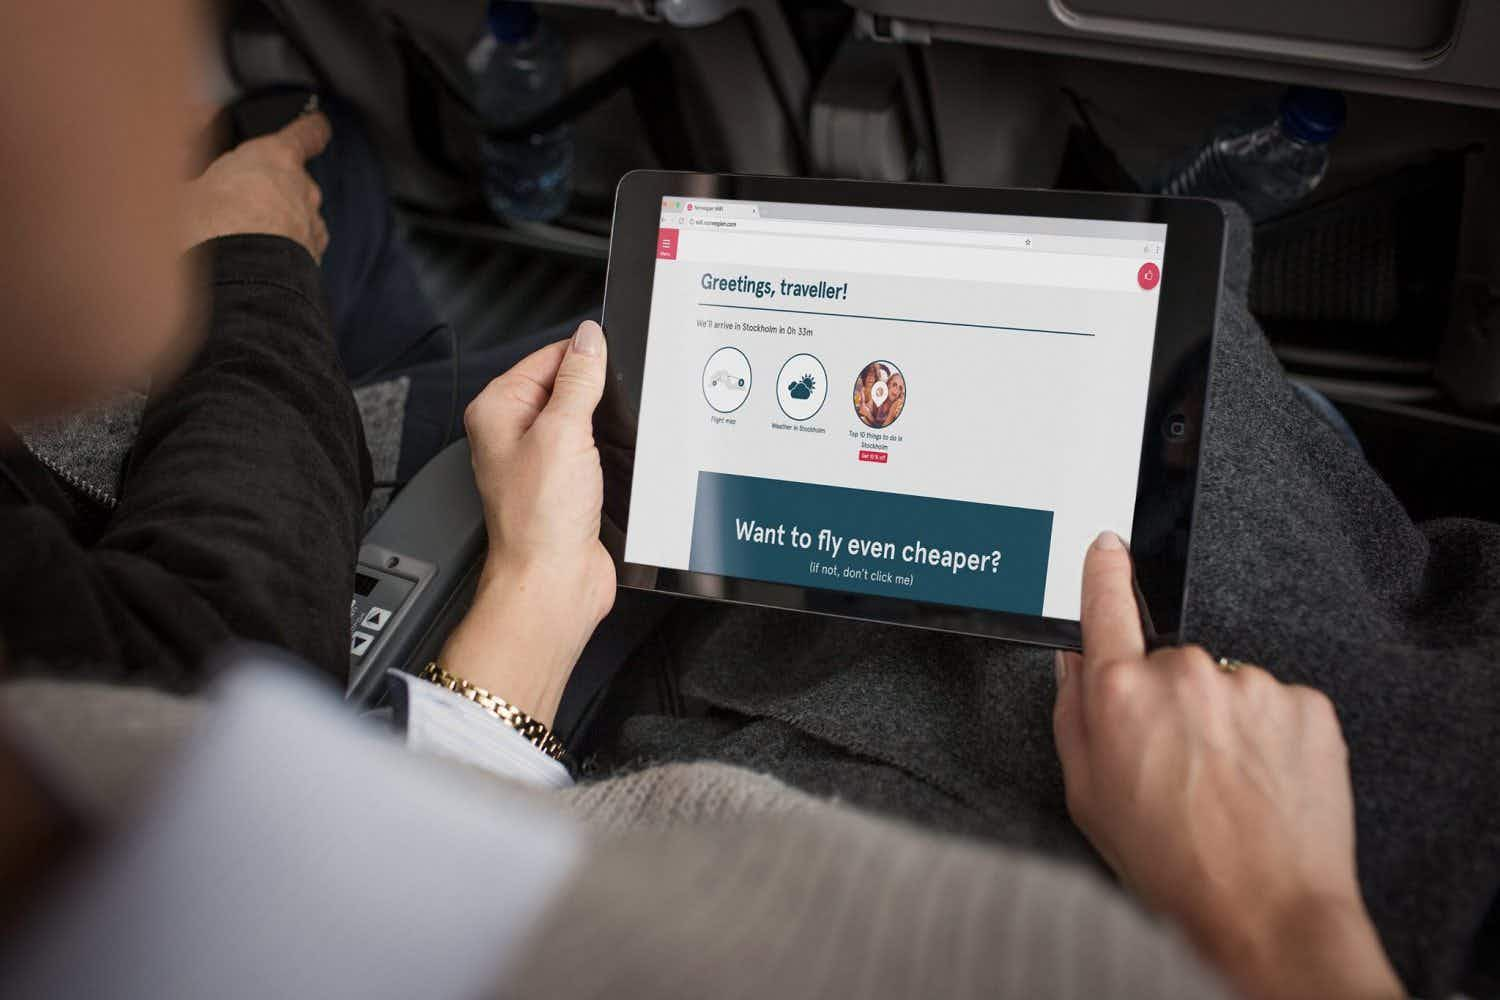 Passengers on low cost airline Norwegian to get free Wi-Fi on long haul flights